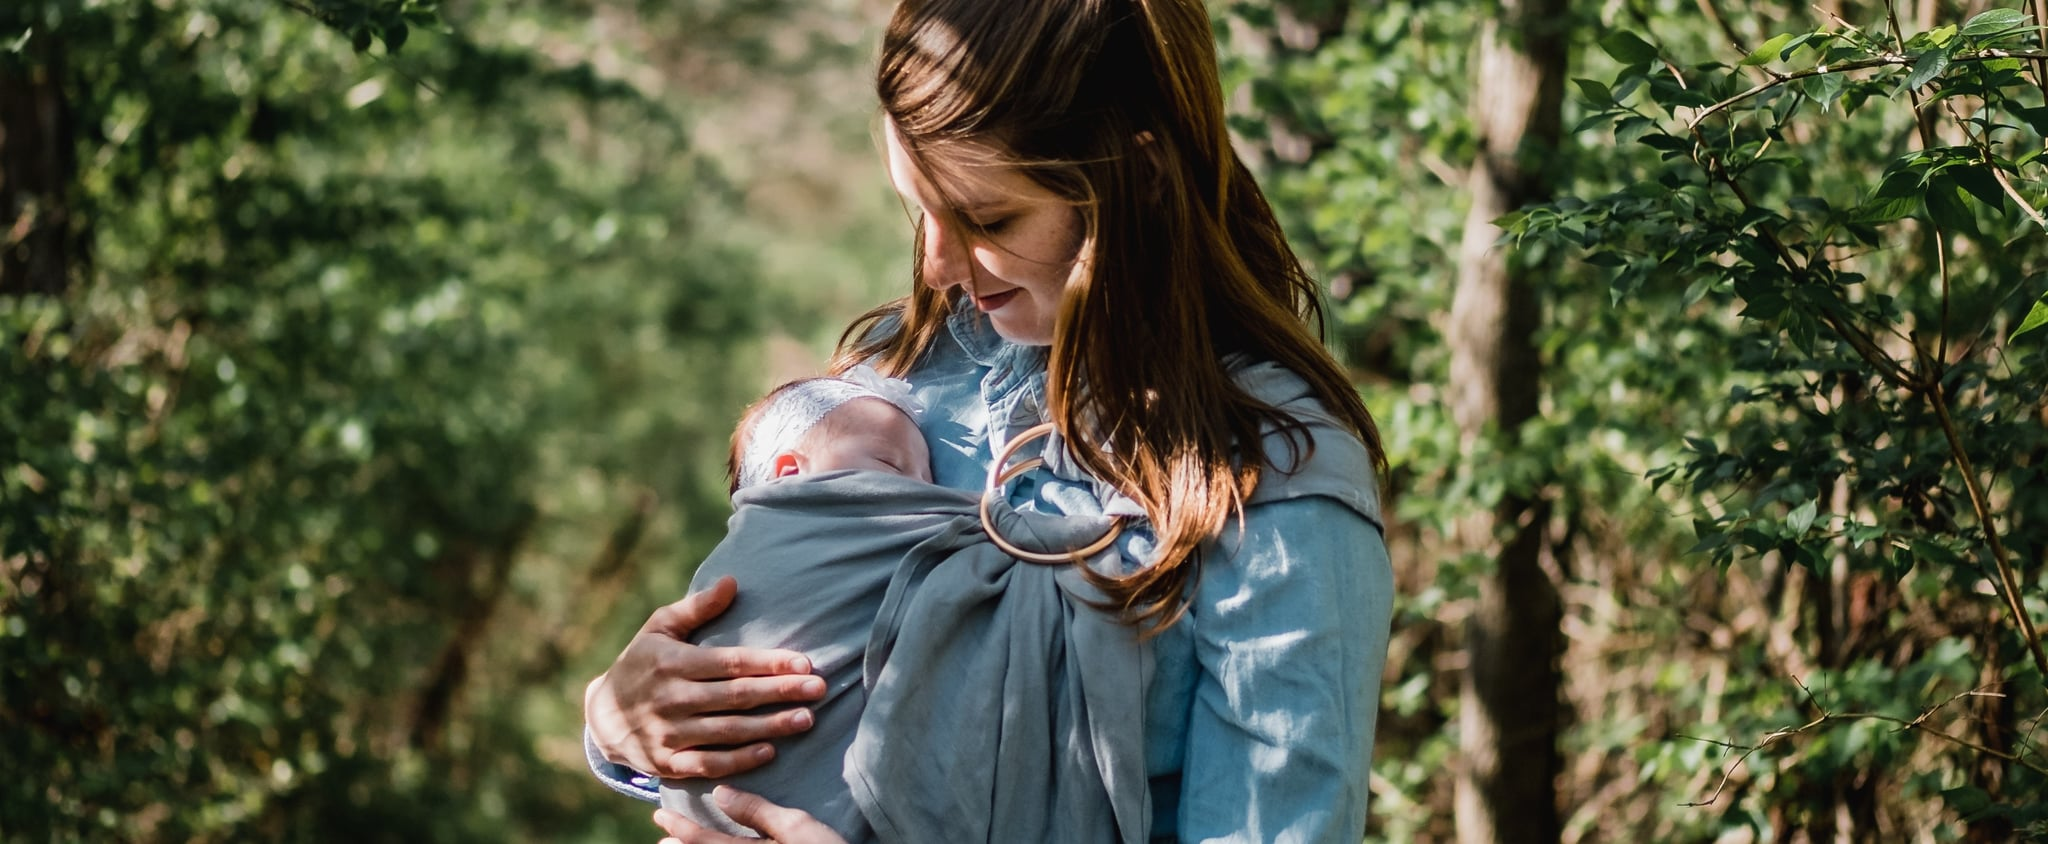 Things That Make New Moms Cry